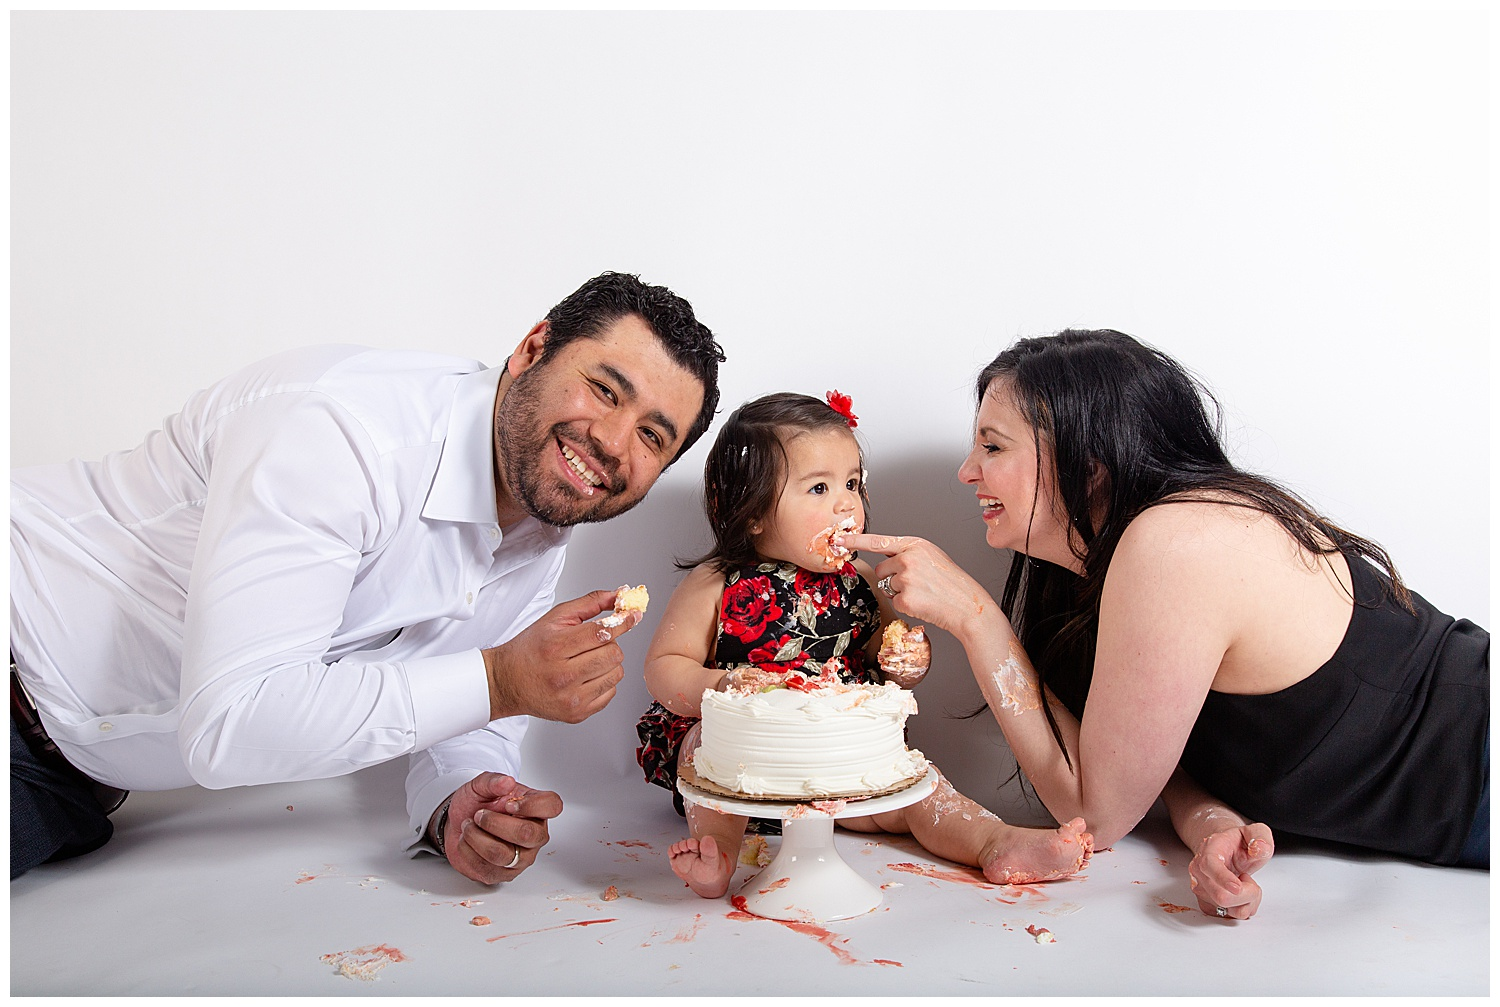 emily-belson-photography-dc-family-photographer-23.jpg